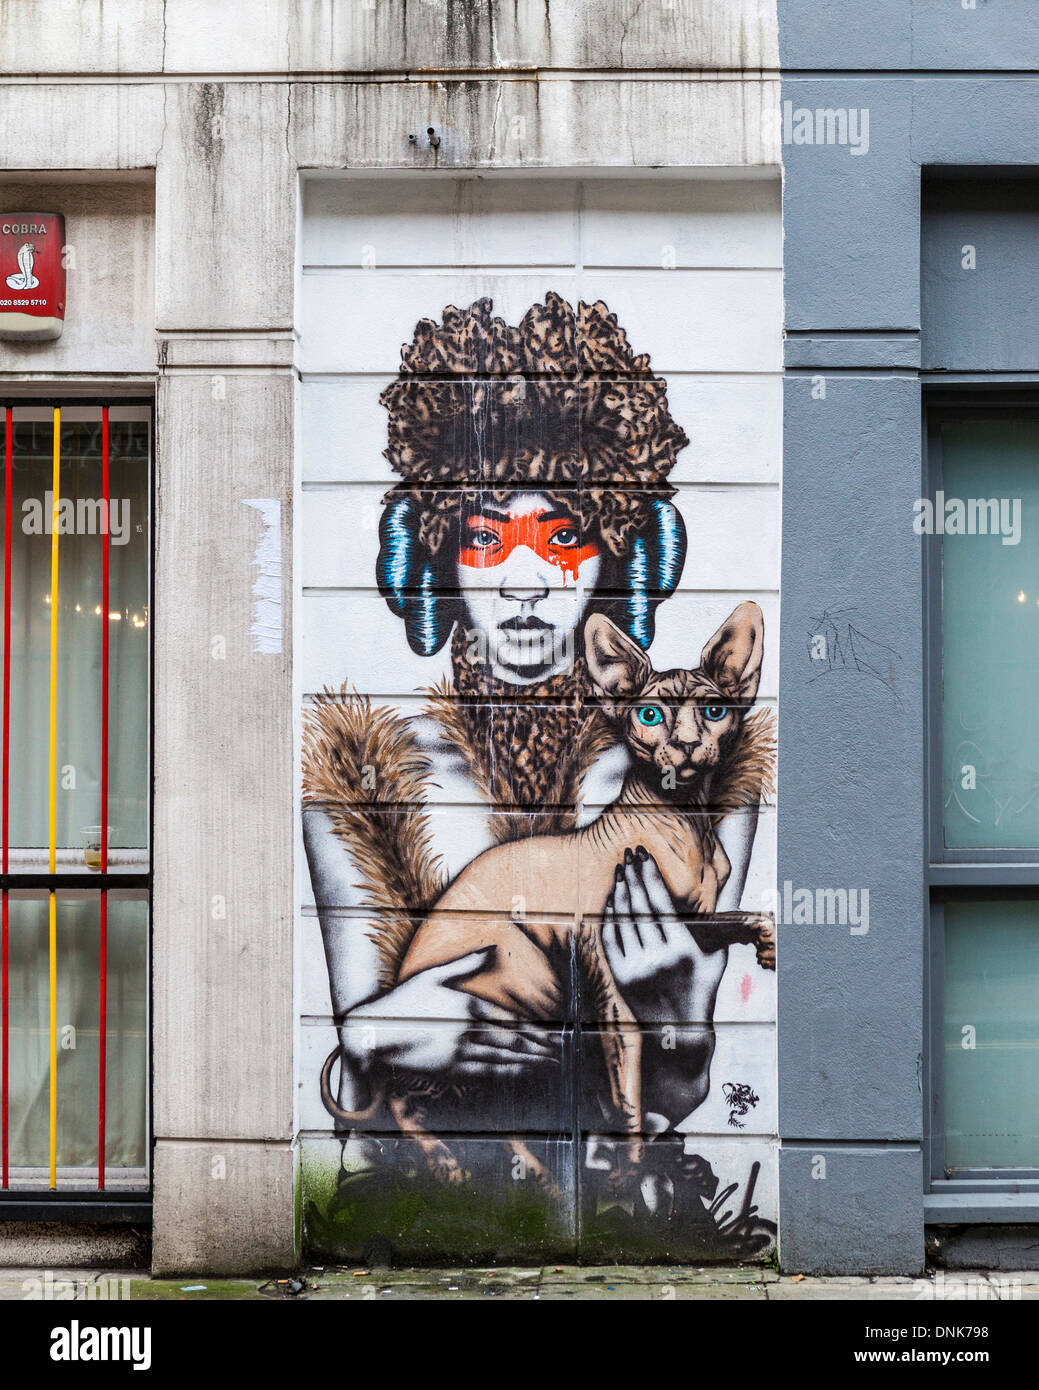 Street urban art Tribal Woman in mask holding sphynx hairless cat - Cheshire street, East London, UK - Stock Image